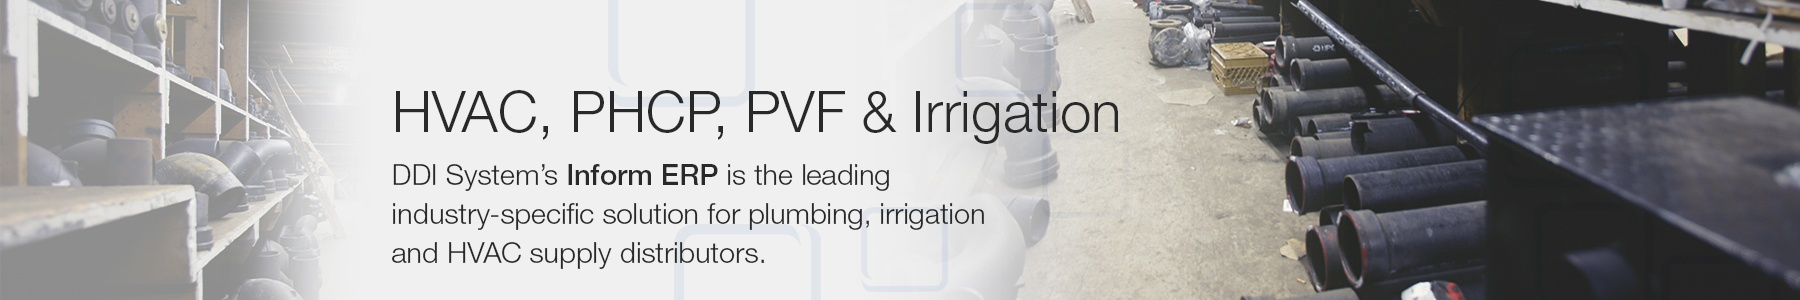 hvac-phcp-header-top-irrigation.jpg